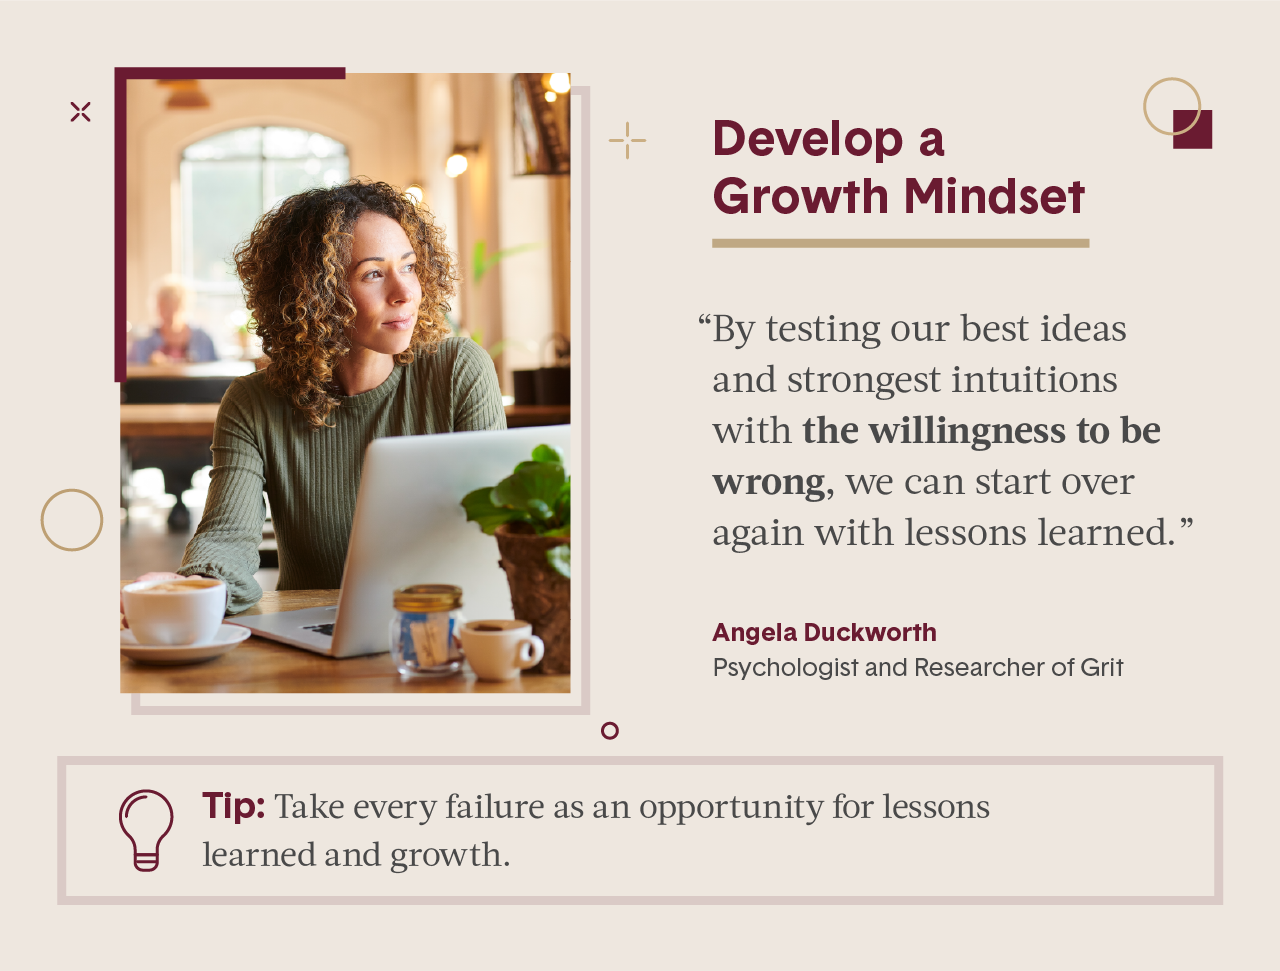 Pink square visual including quote from female expert in business and photo of women smiling and looking into the sunlight while at her computer